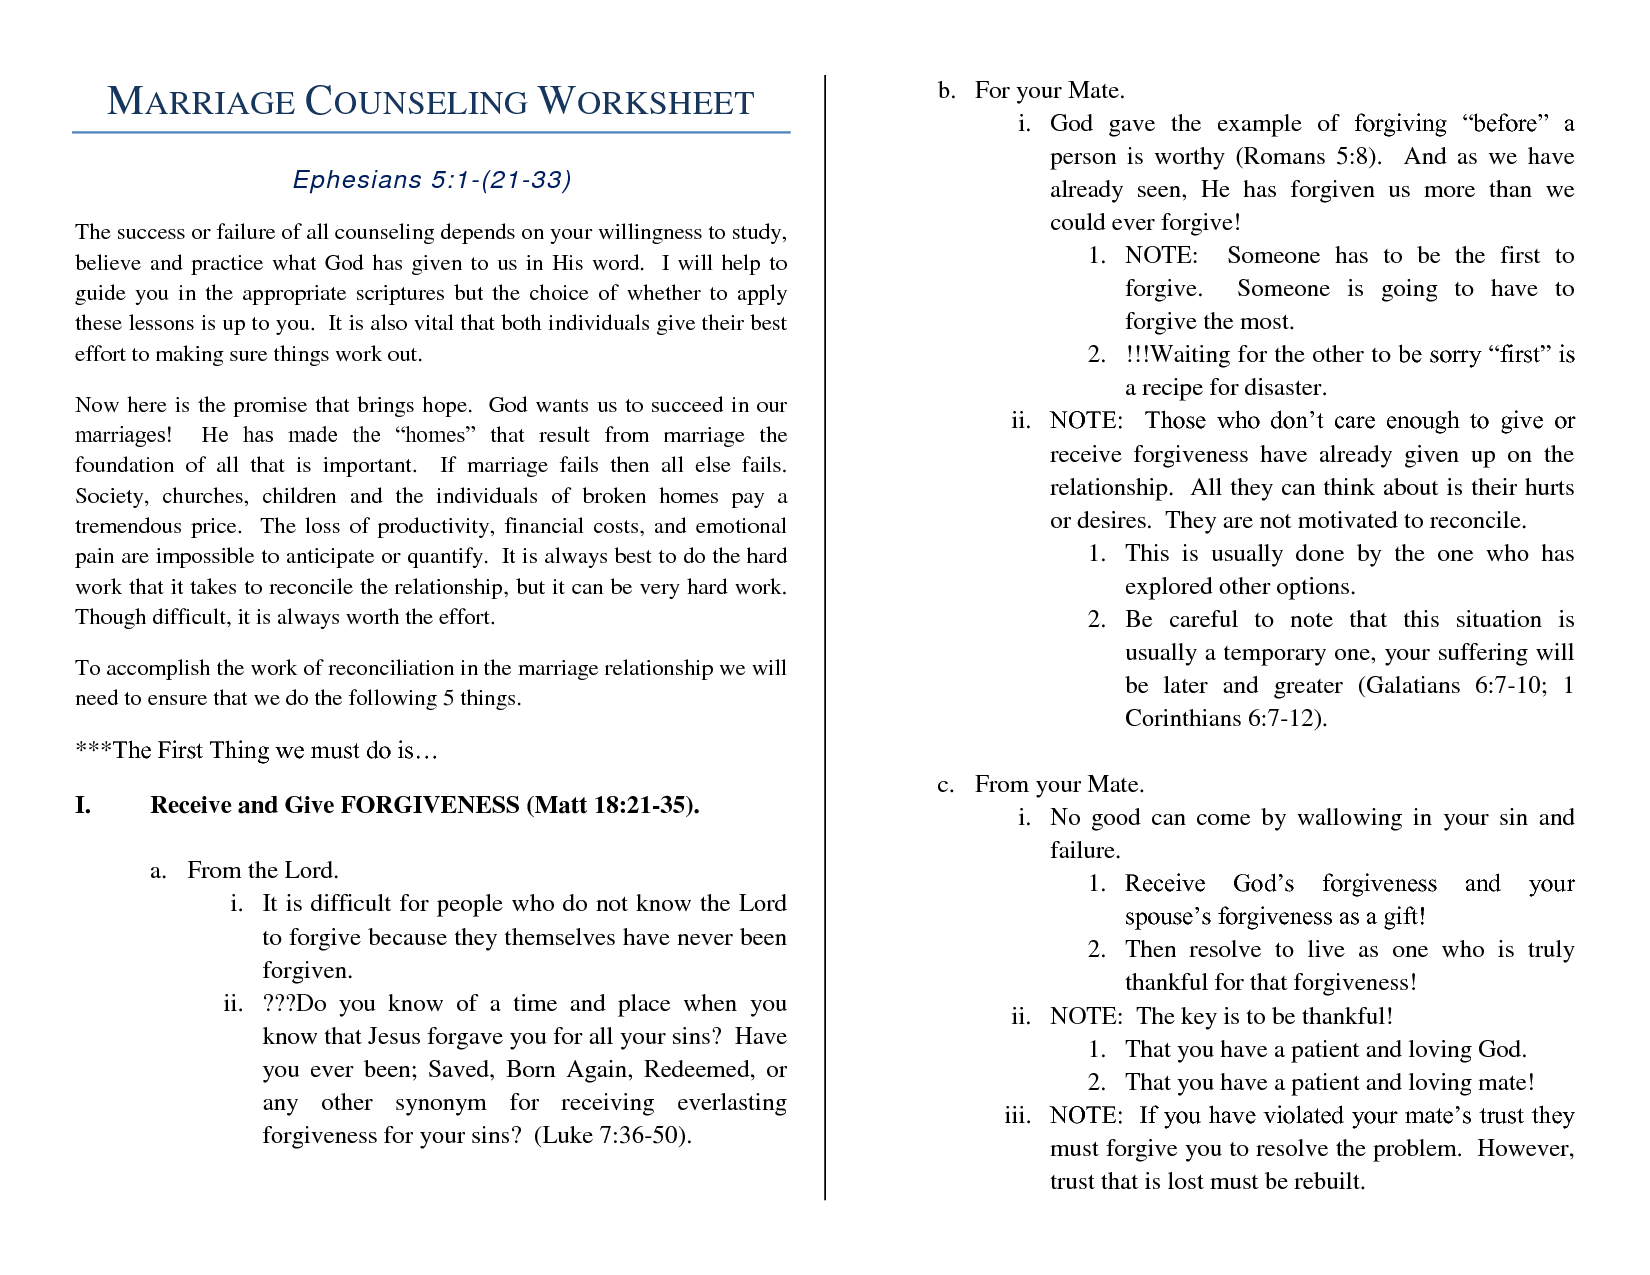 Worksheets Free Marriage Counseling Worksheets marriagehelpworksheet marriage counseling worksheet worksheet